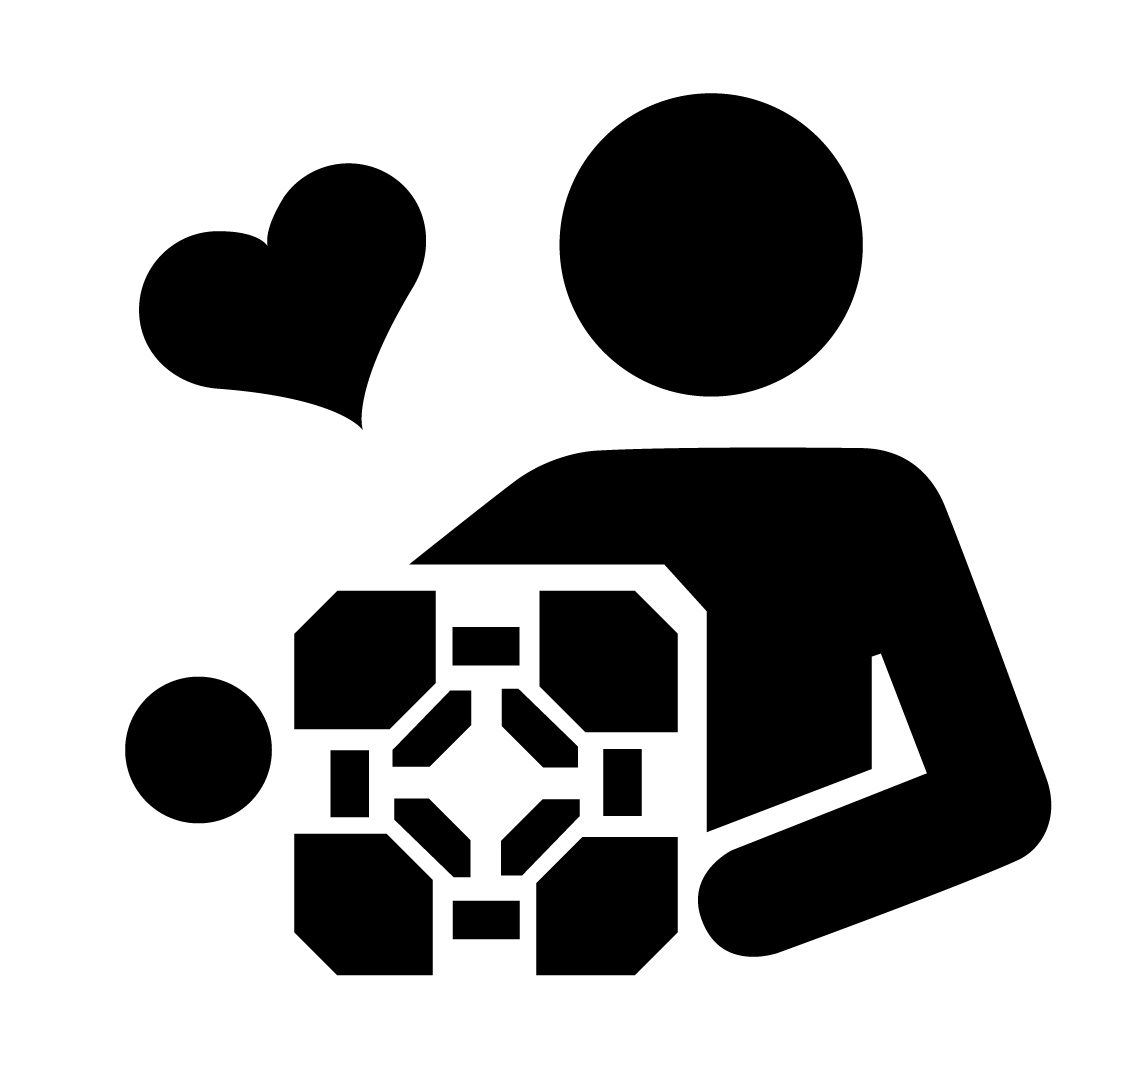 1125x1071 I Love You, Weighted Companion Cube Stencil Template Stencil